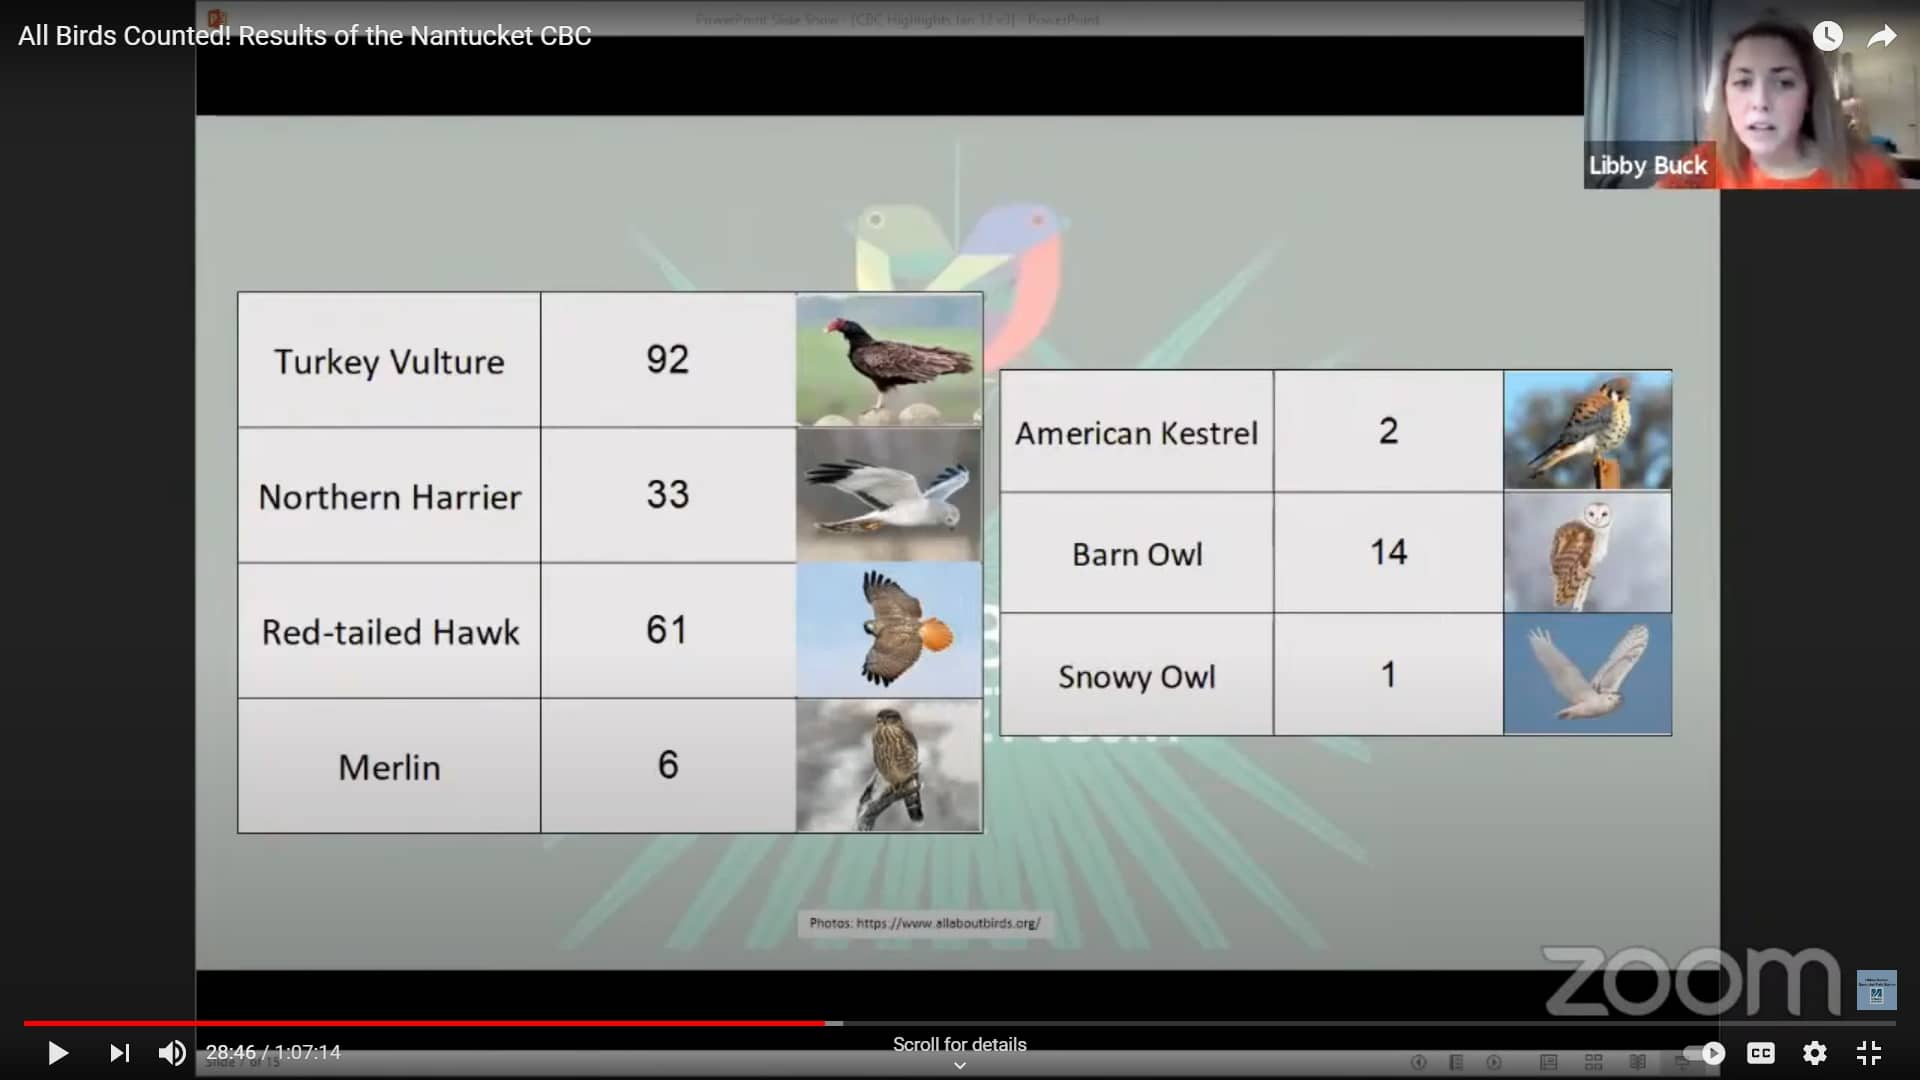 2020 Christma Bird Count Results